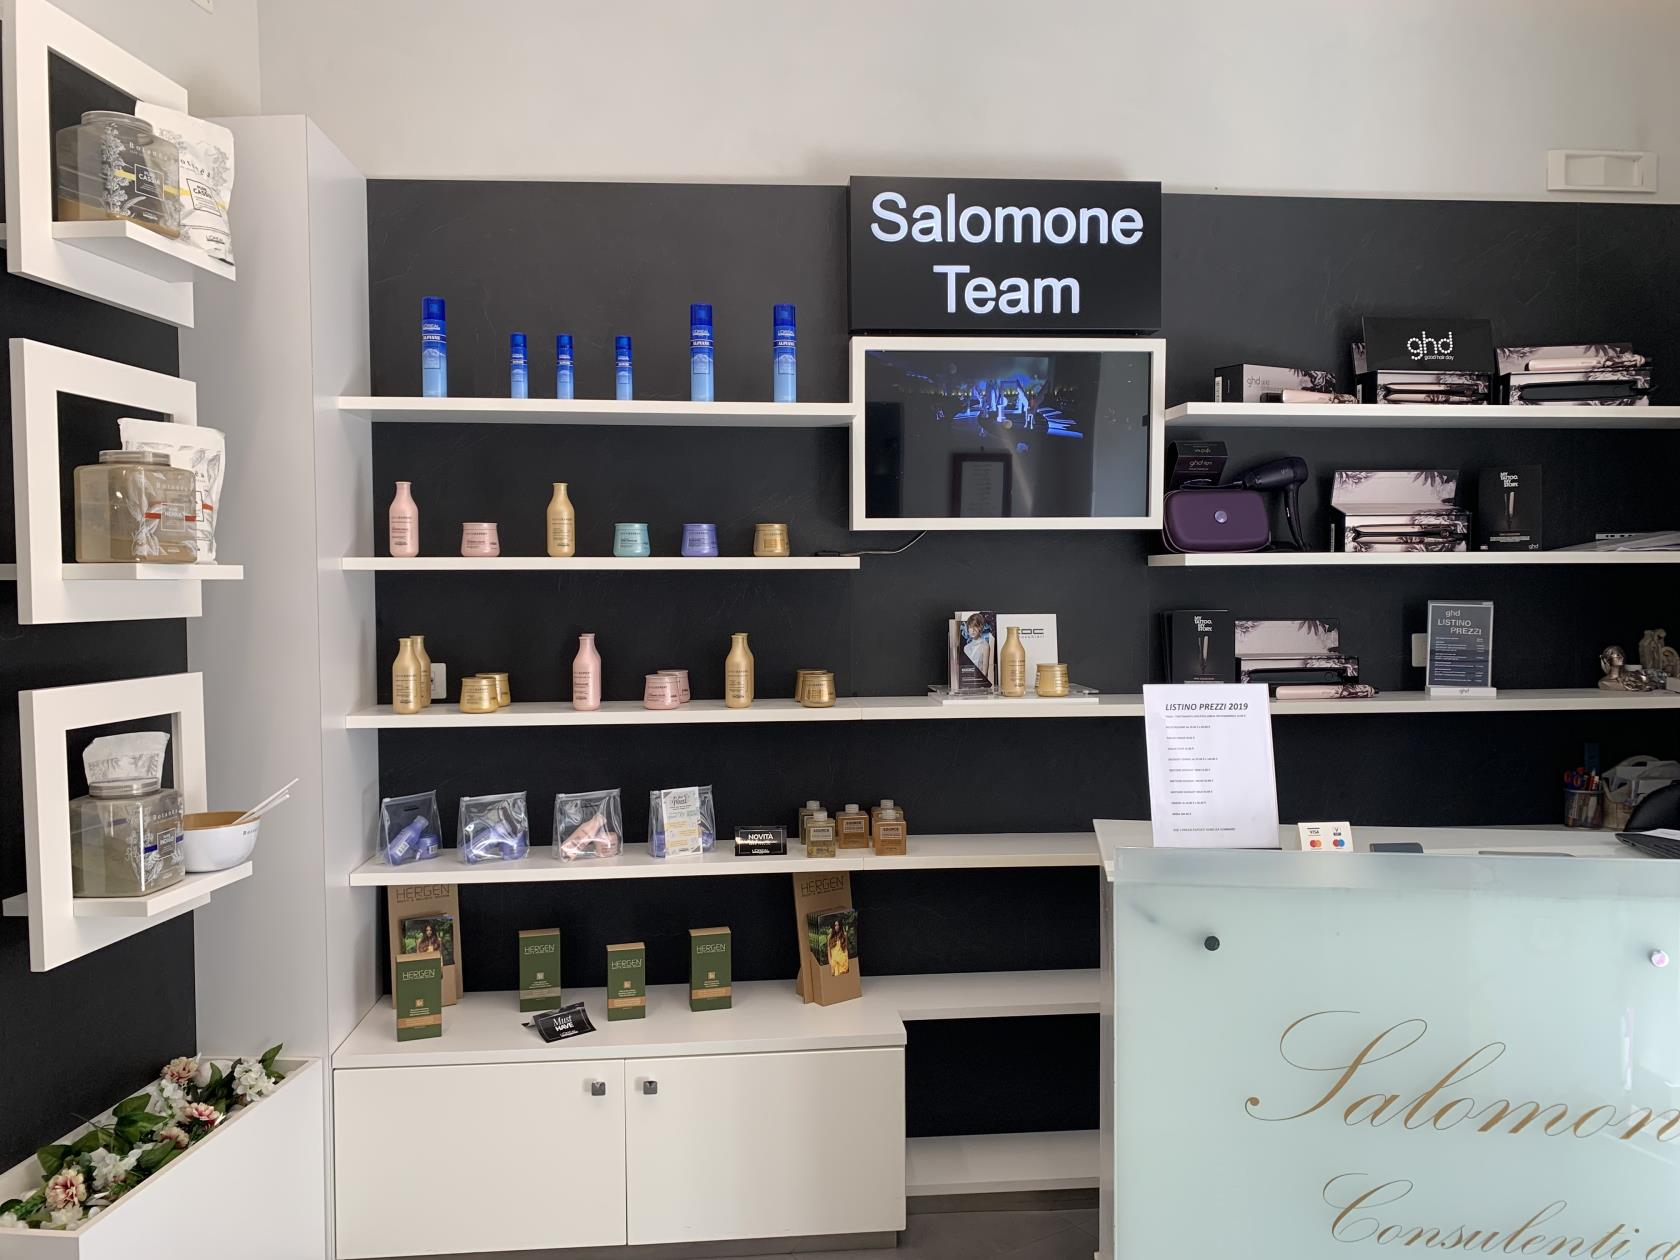 salone cdc salomone team